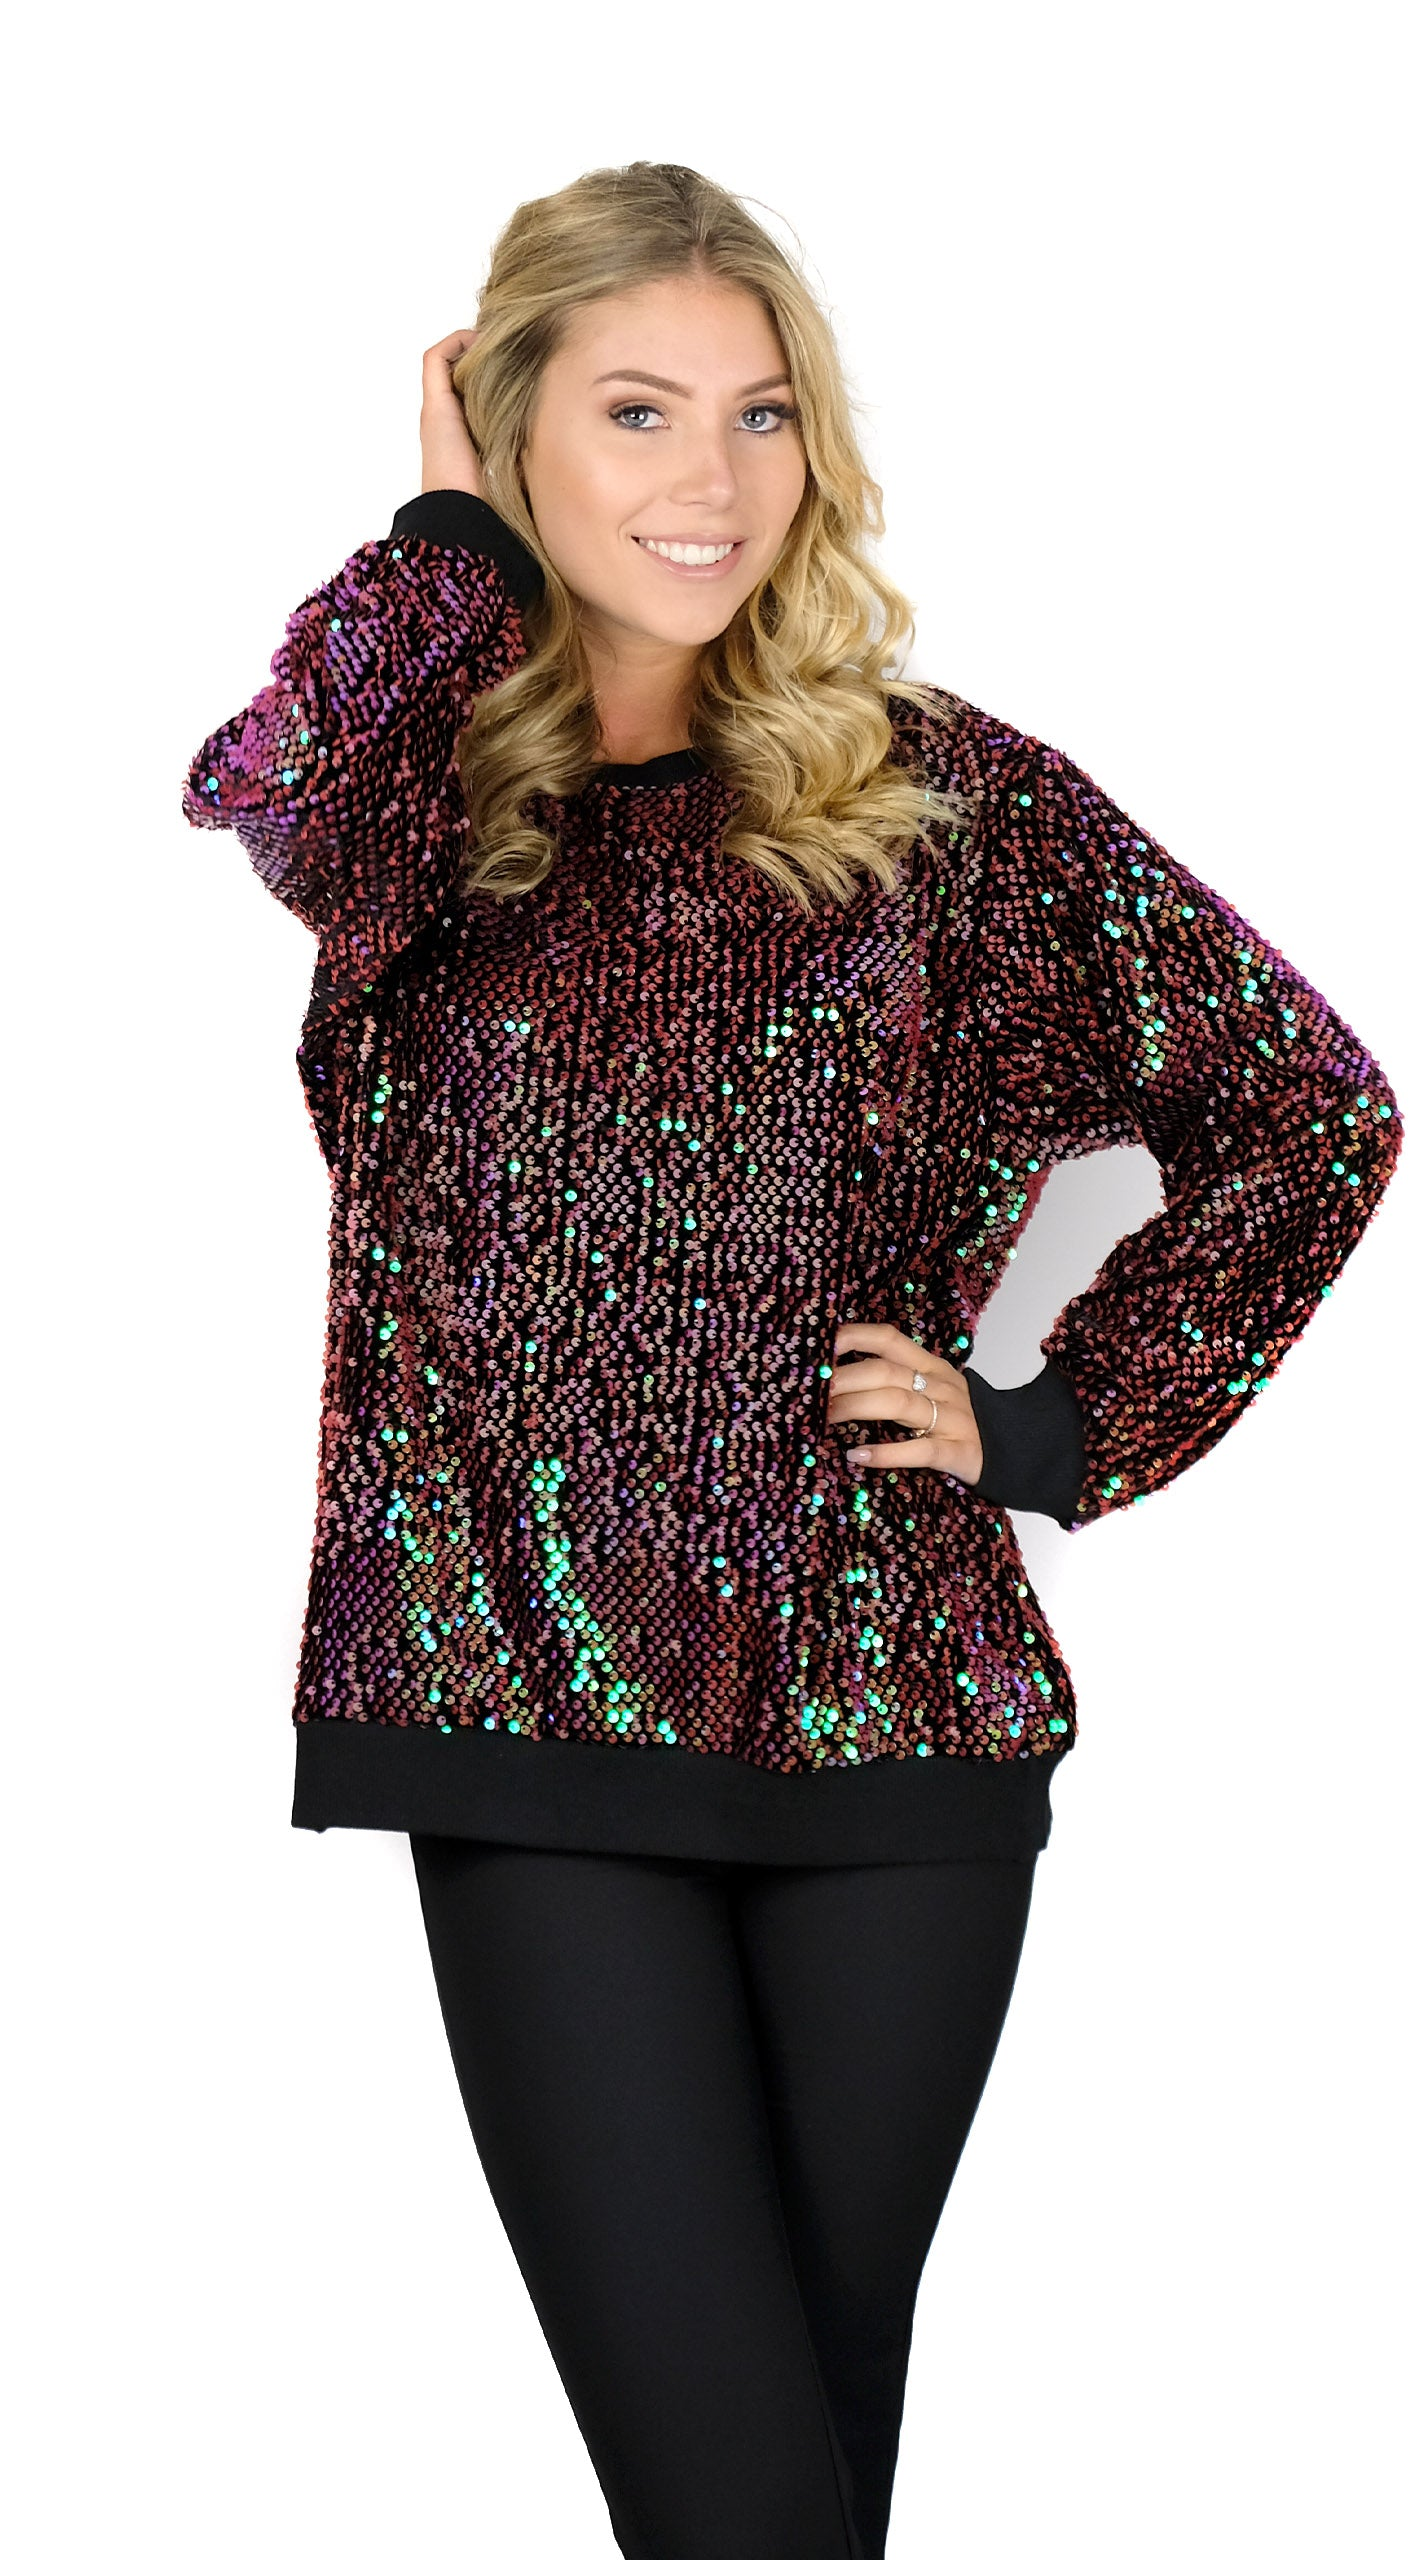 BUYLAU | Disco Fever Bordeaux Sweater